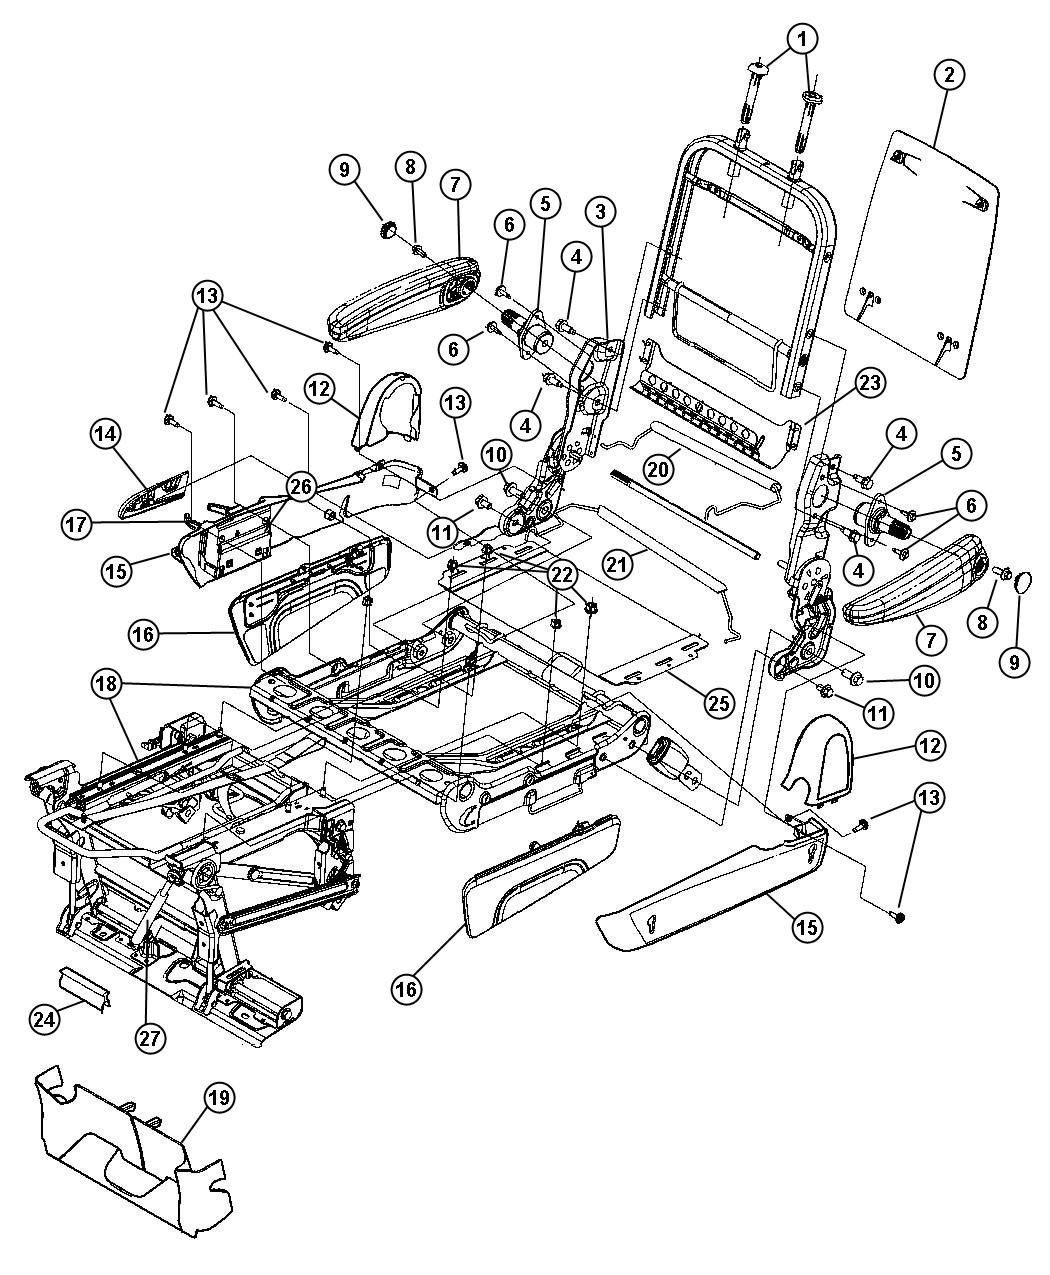 image result for interior layout of chrysler voyager blueprint